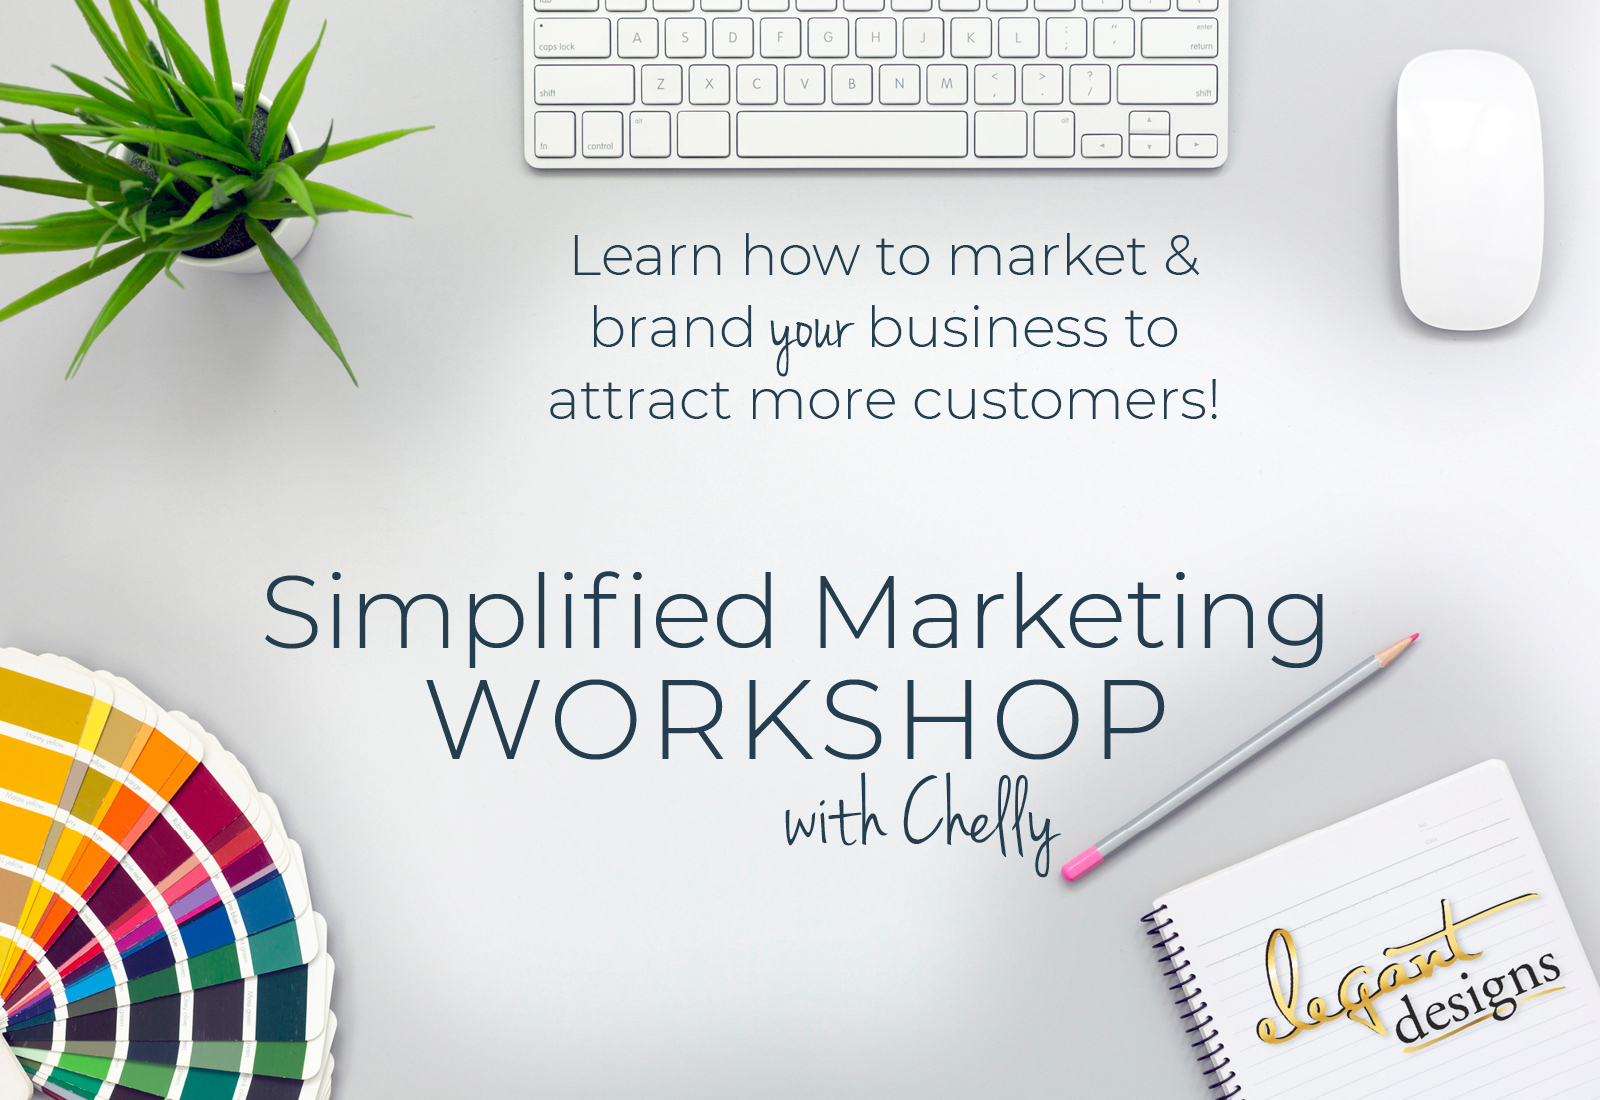 Simplified Marketing Workshop